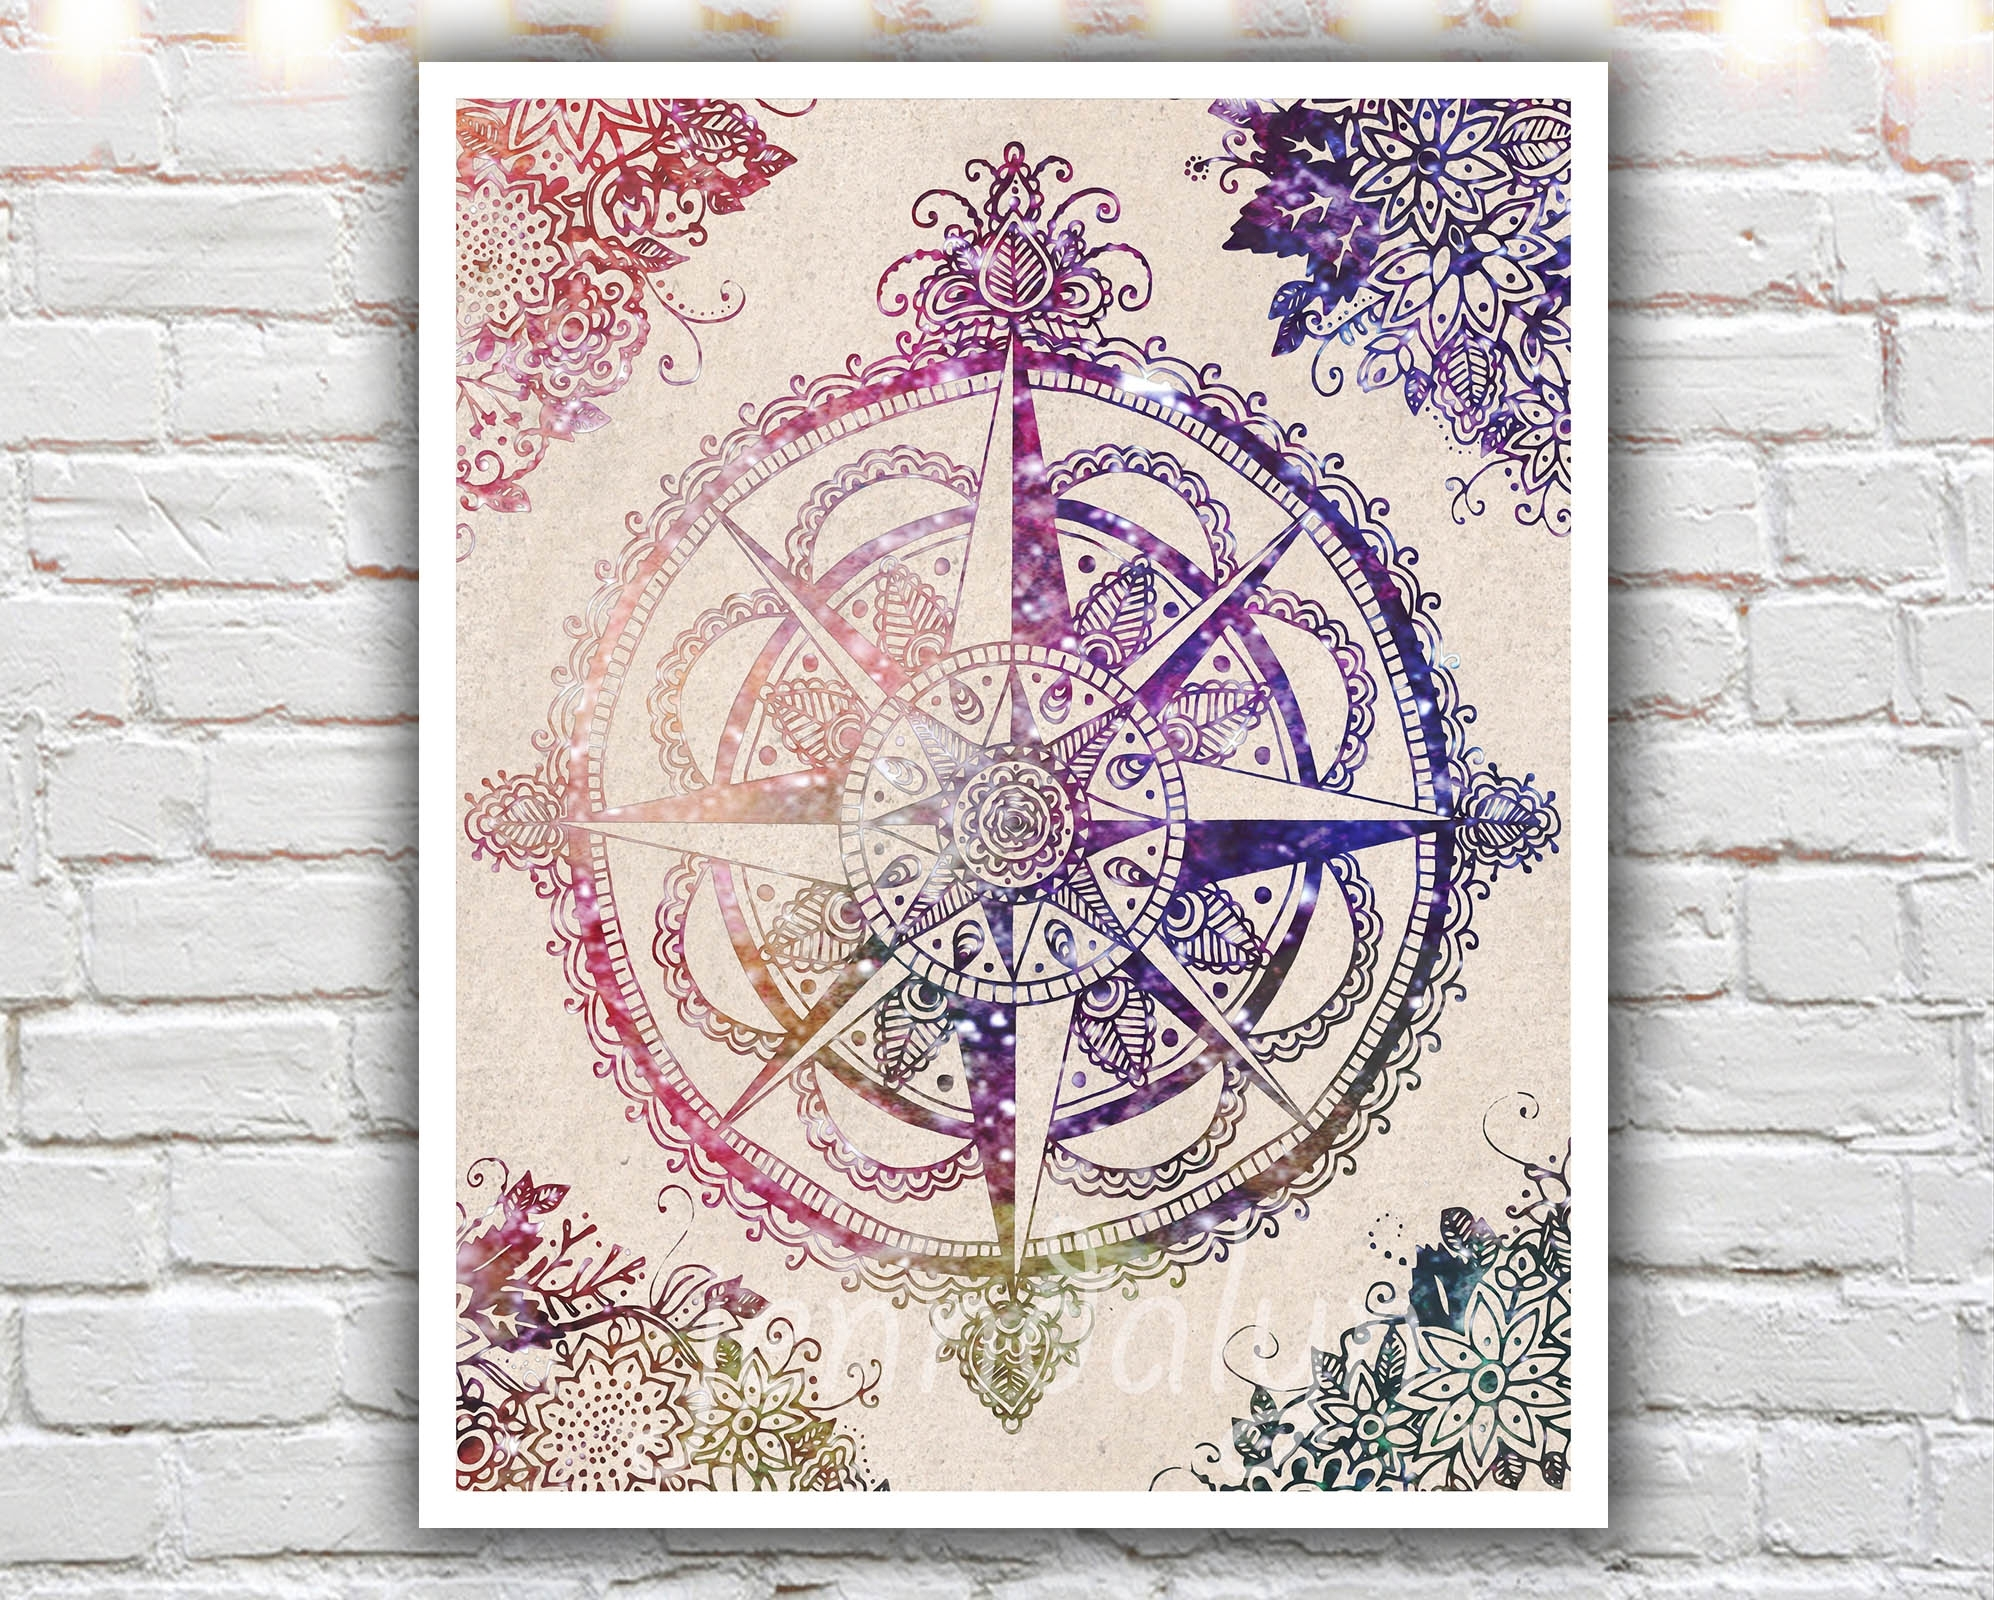 Voyager Ii – 16 X 20 Paper Print, Large Wall Art, Compass Rose In Best And Newest Henna Wall Art (View 18 of 20)